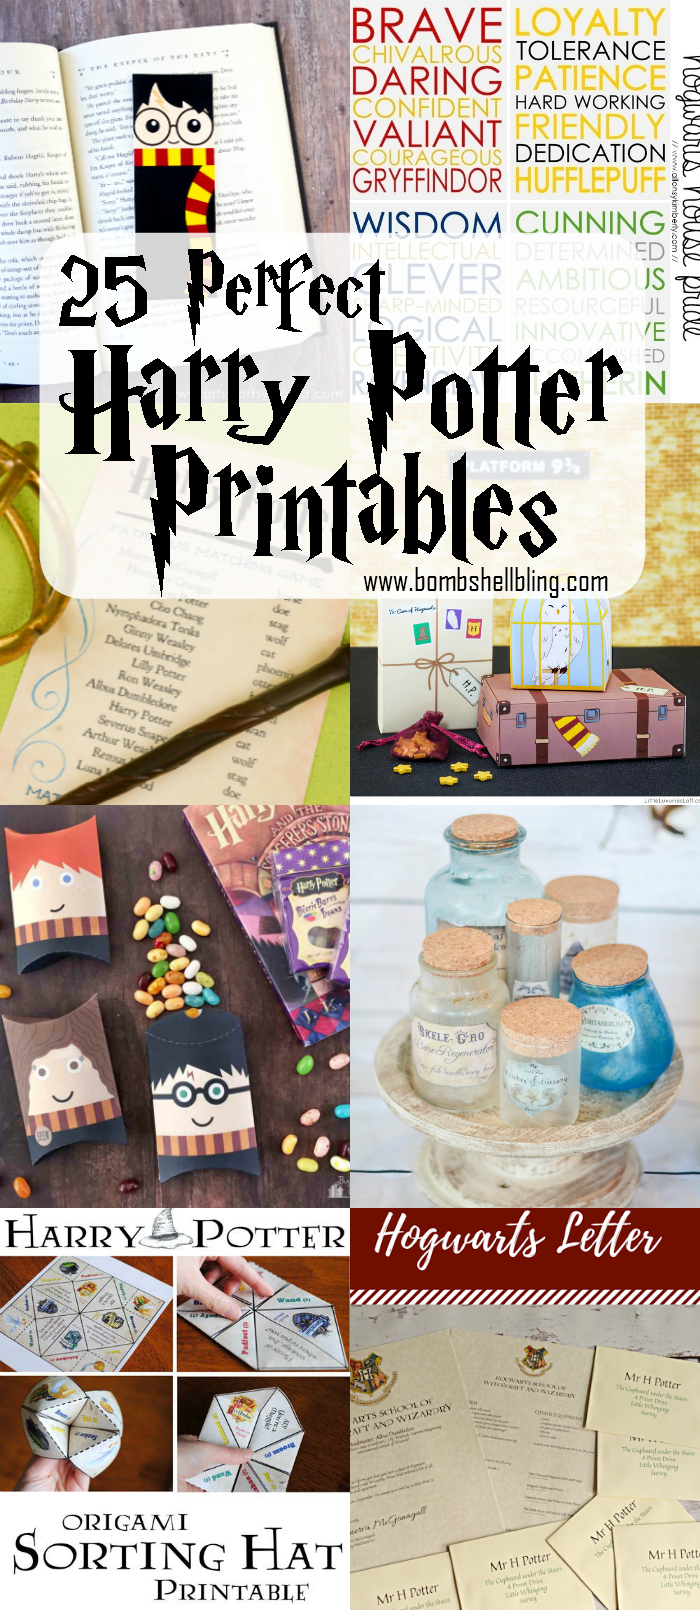 graphic relating to Harry Potter Printable Book Covers referred to as 25 Ideal Harry Potter Printables - Gathered via Bombs